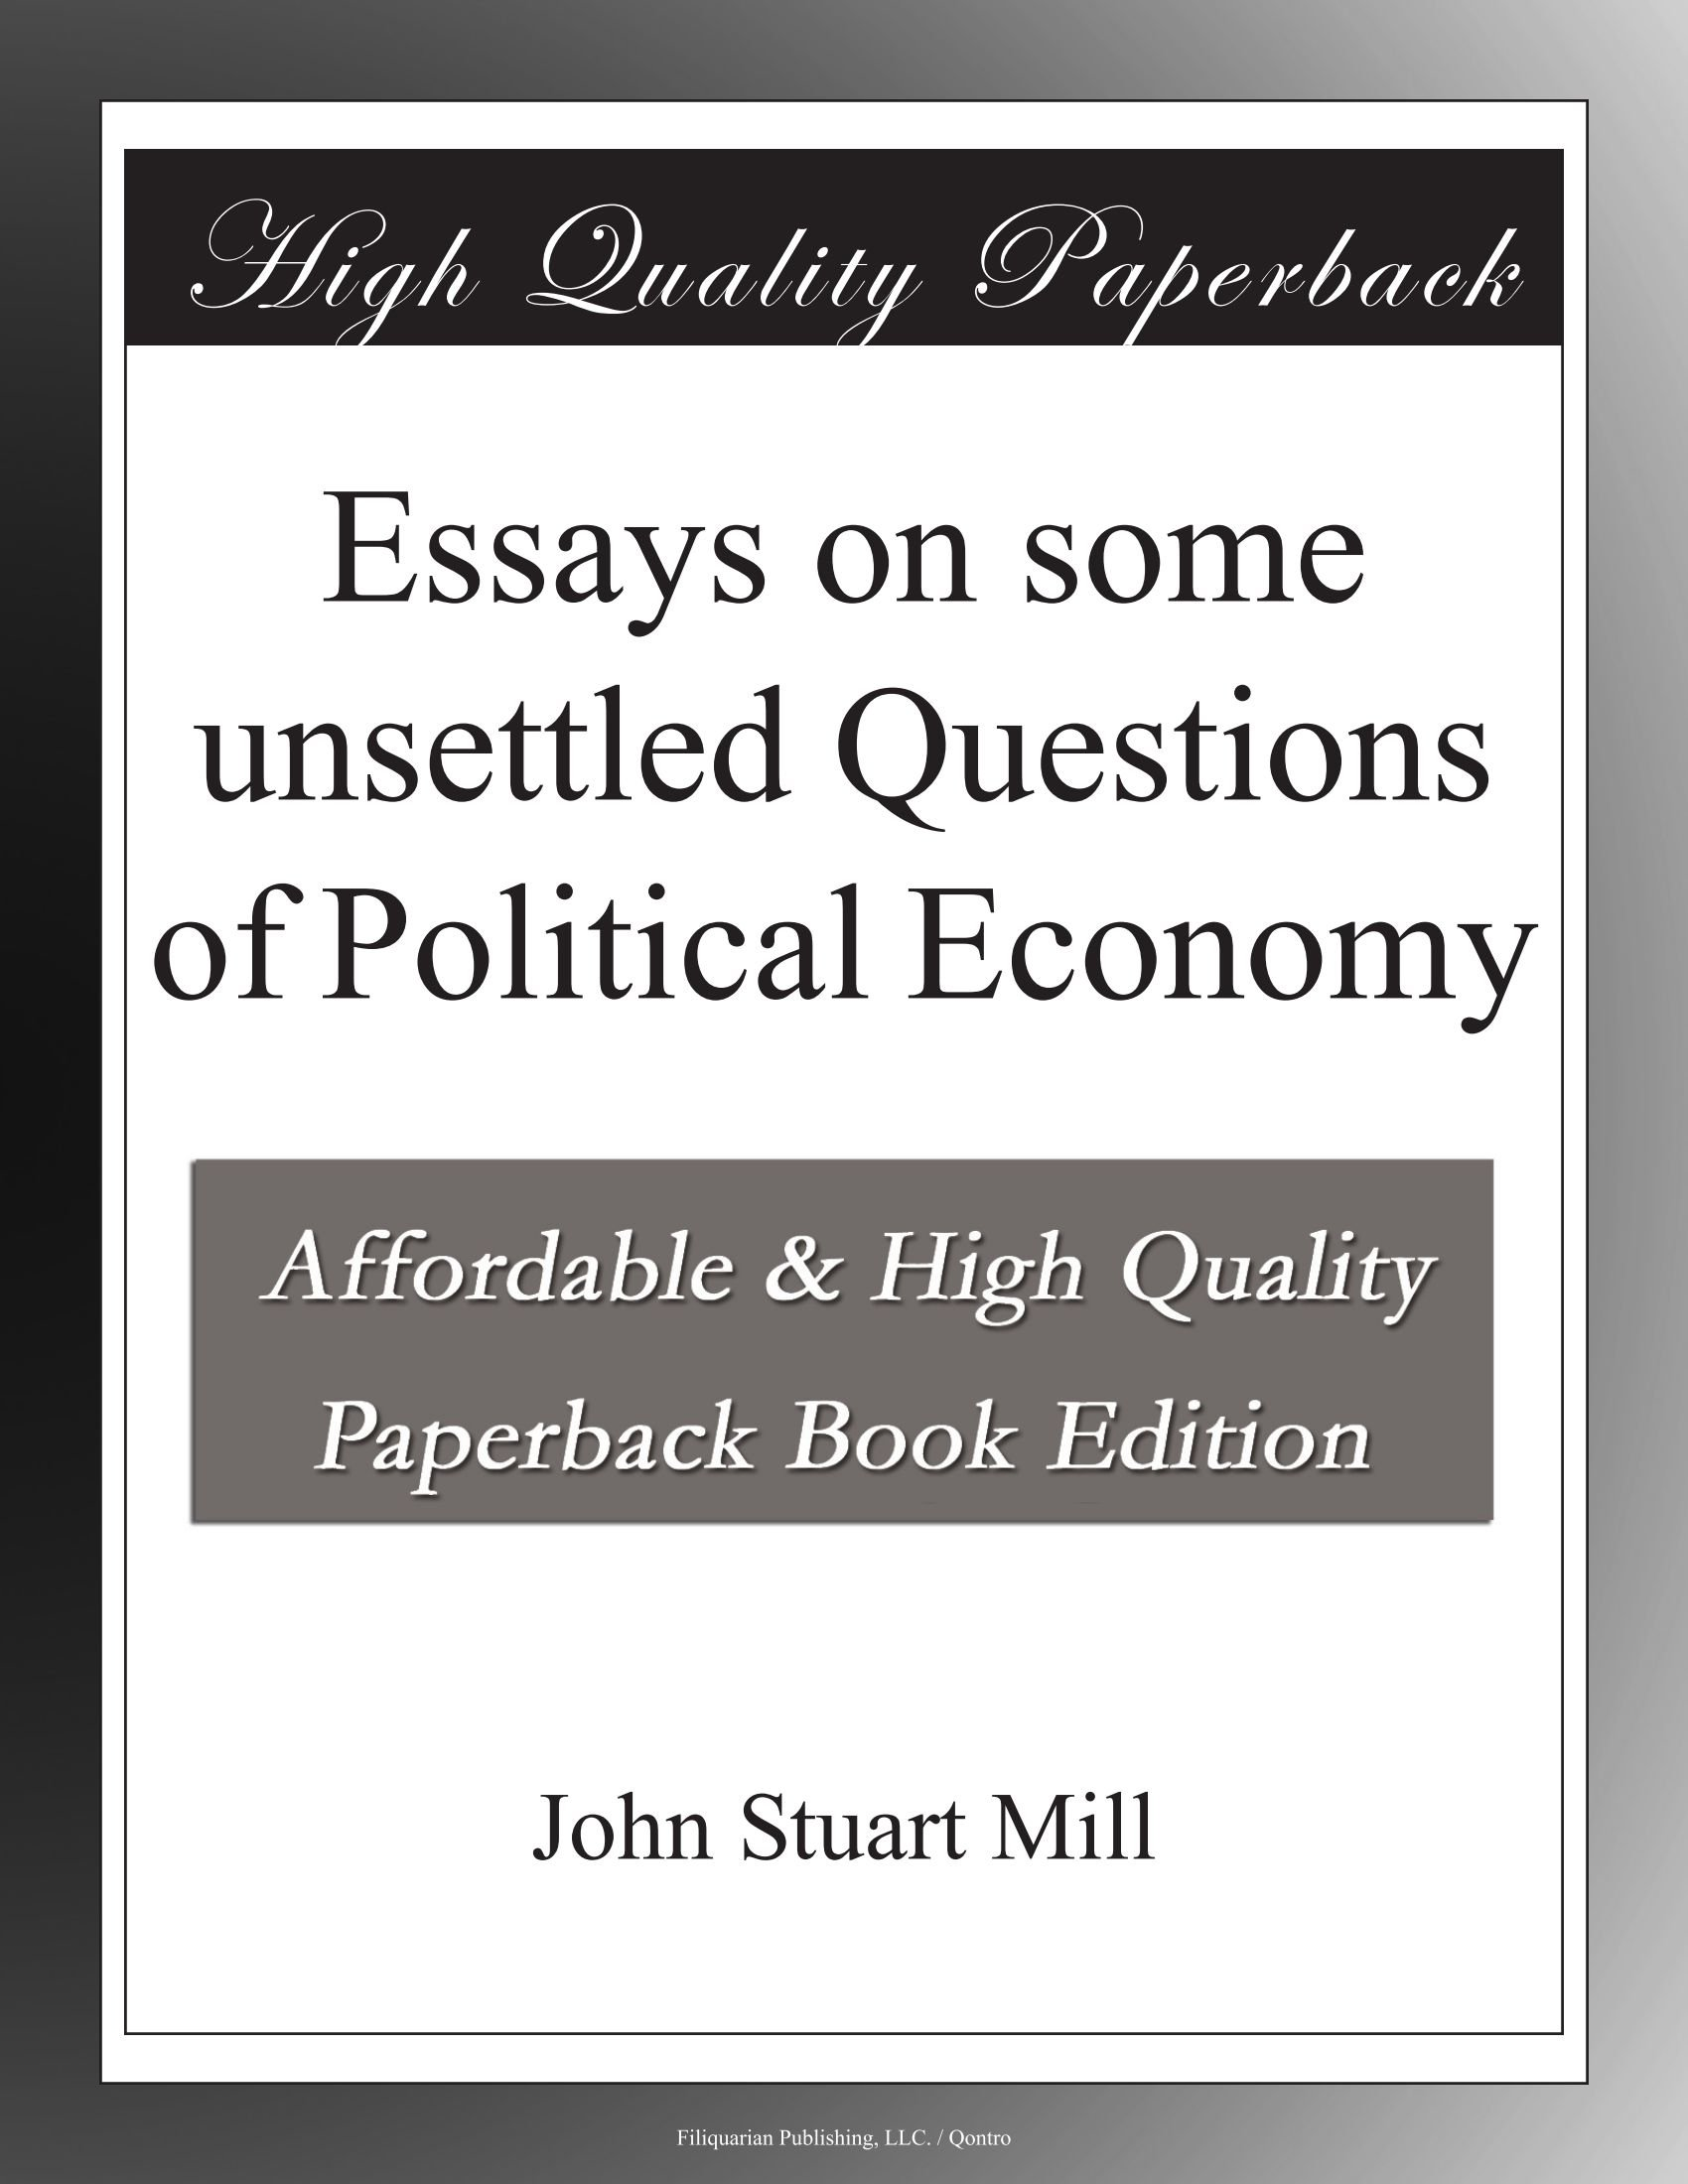 essays on some unsettled questions of political economy pdf